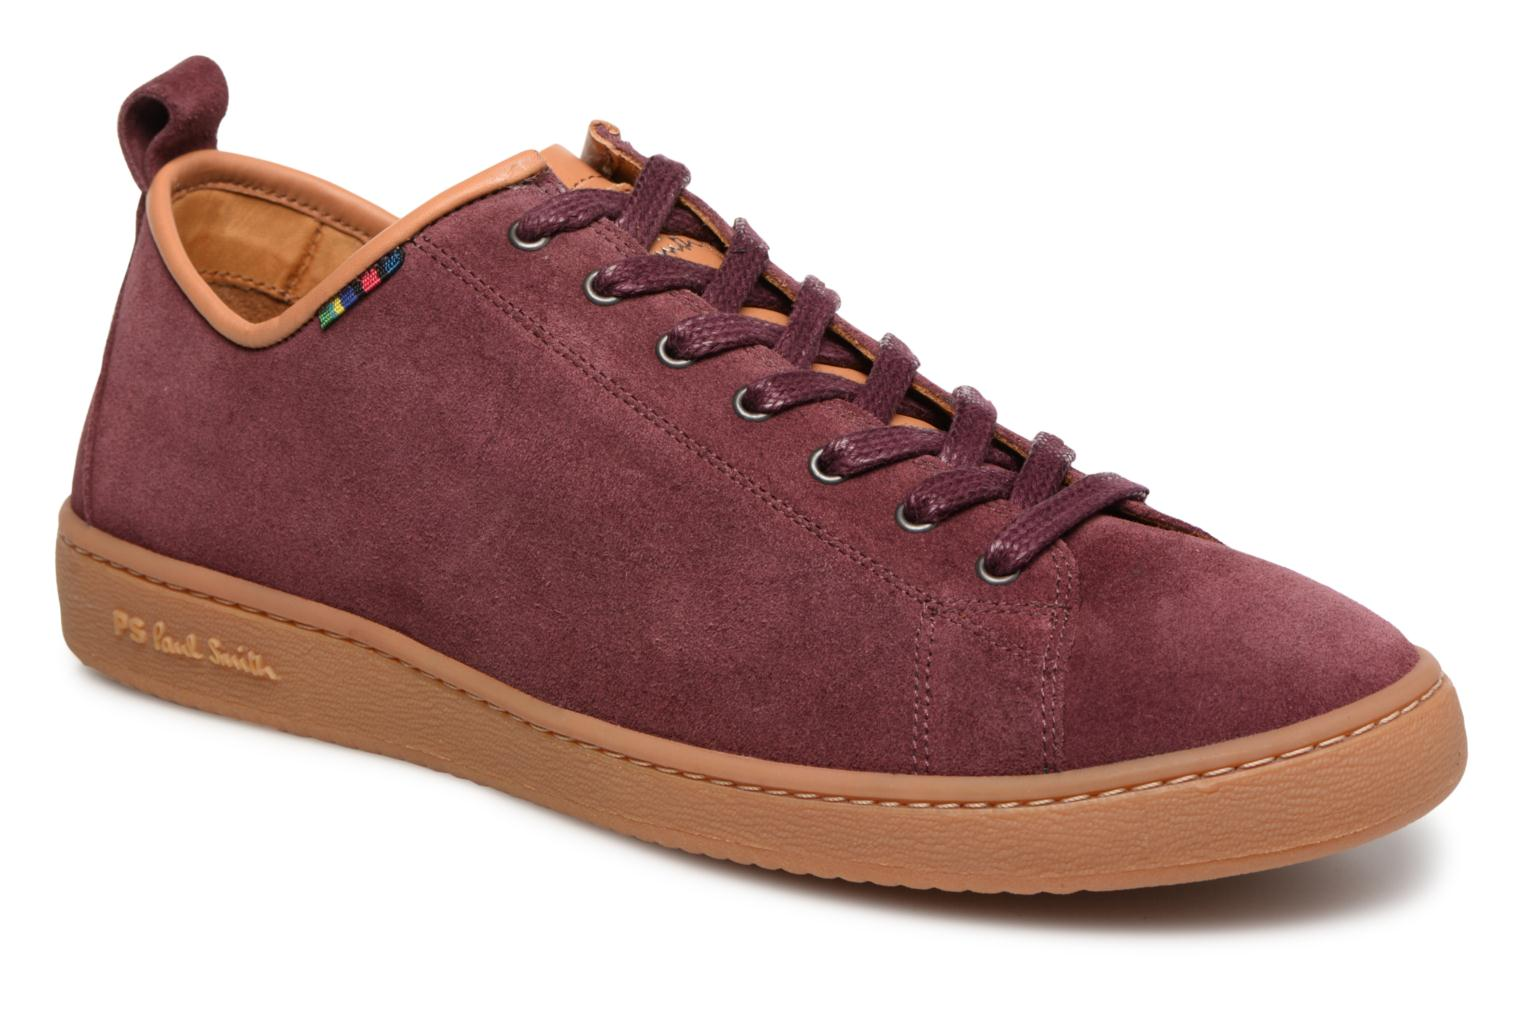 Sneakers Paul Smith Bordeaux